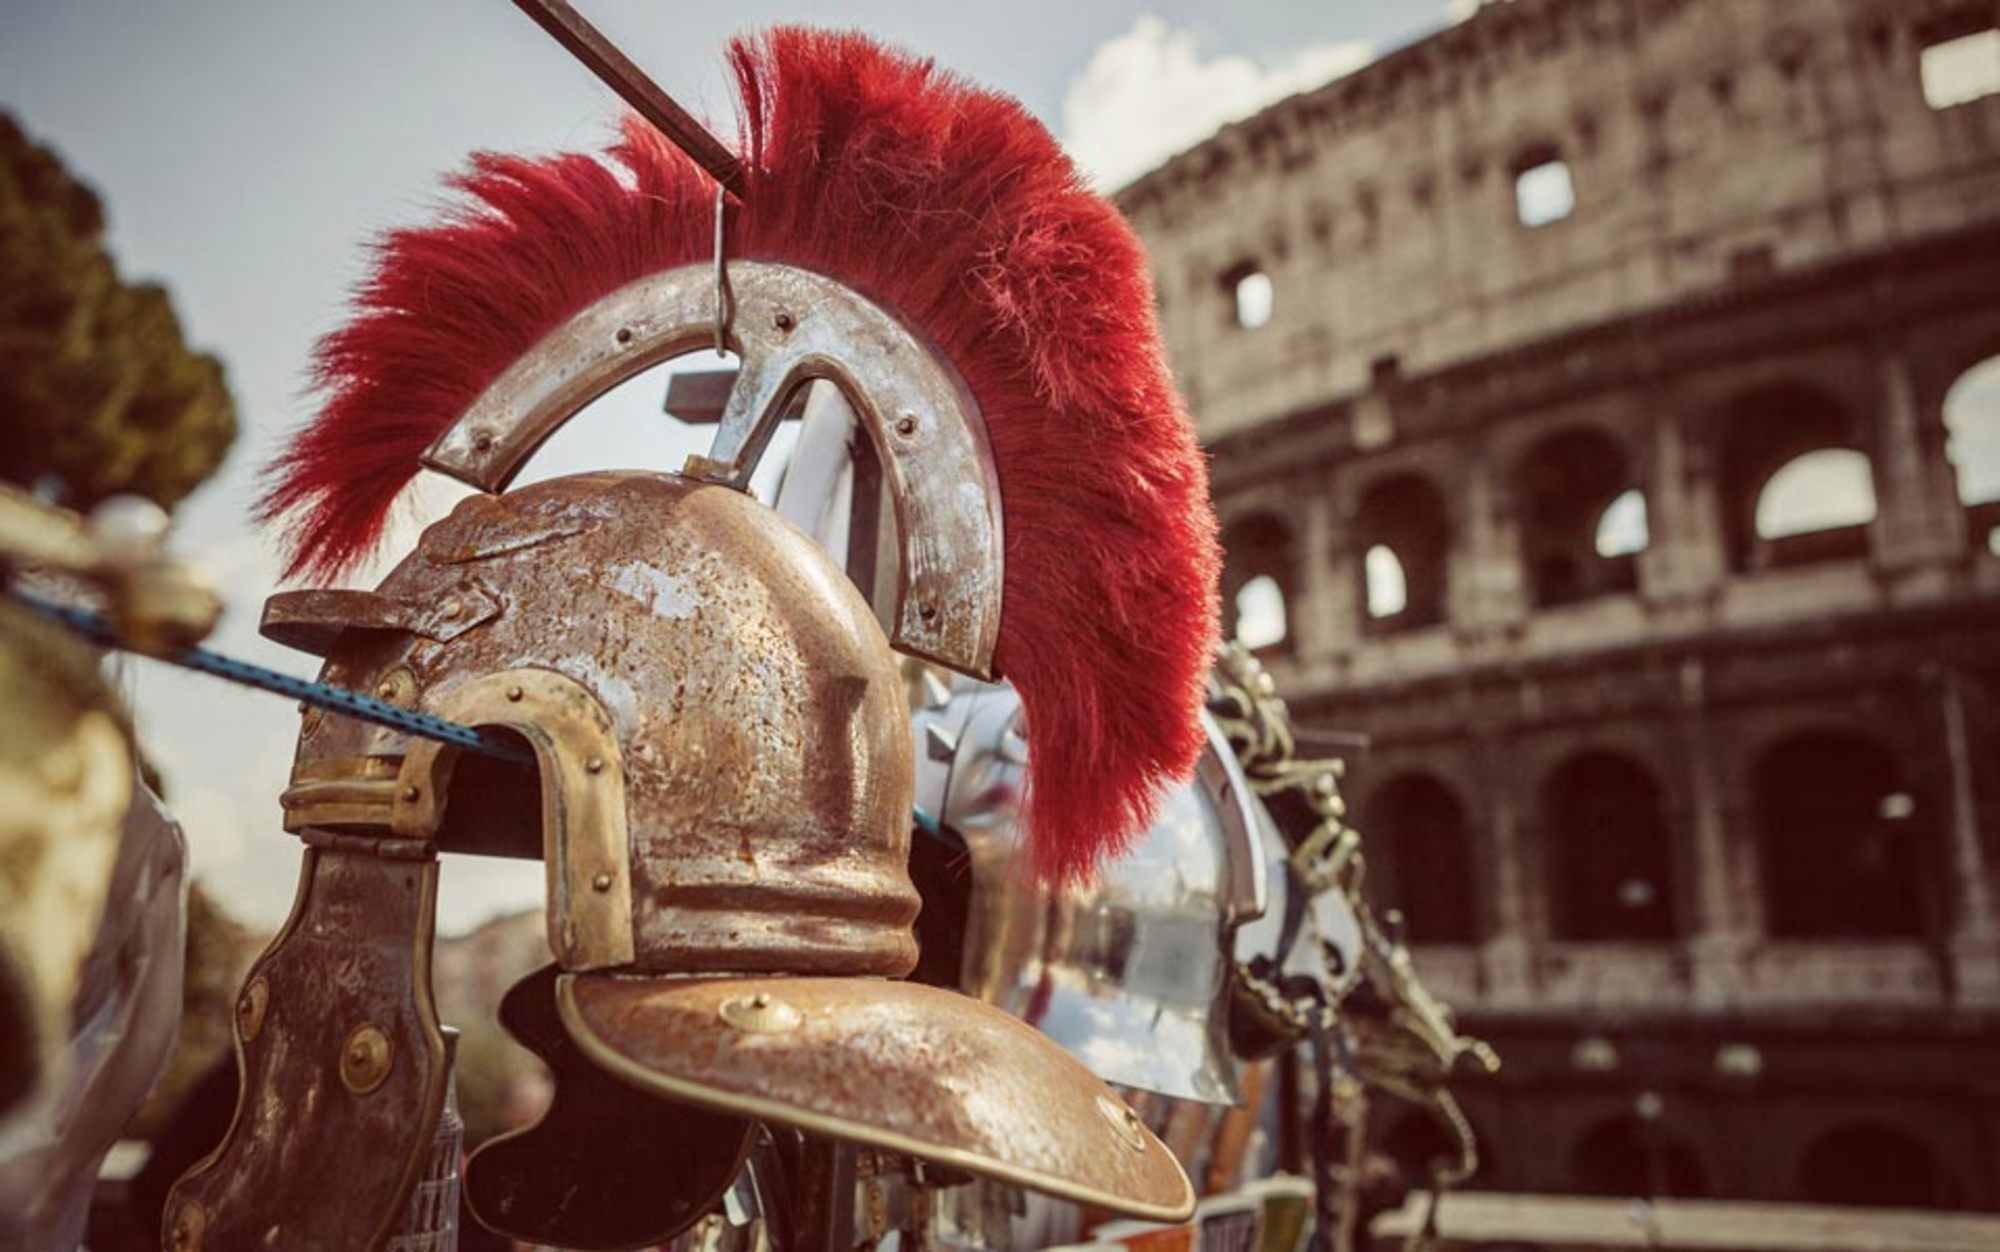 essay on roman gladiators Gladiators of rome by bartek sliwa gladiators were trained warriors who fought each other to the death to entertain the roman people most of these matches took place.